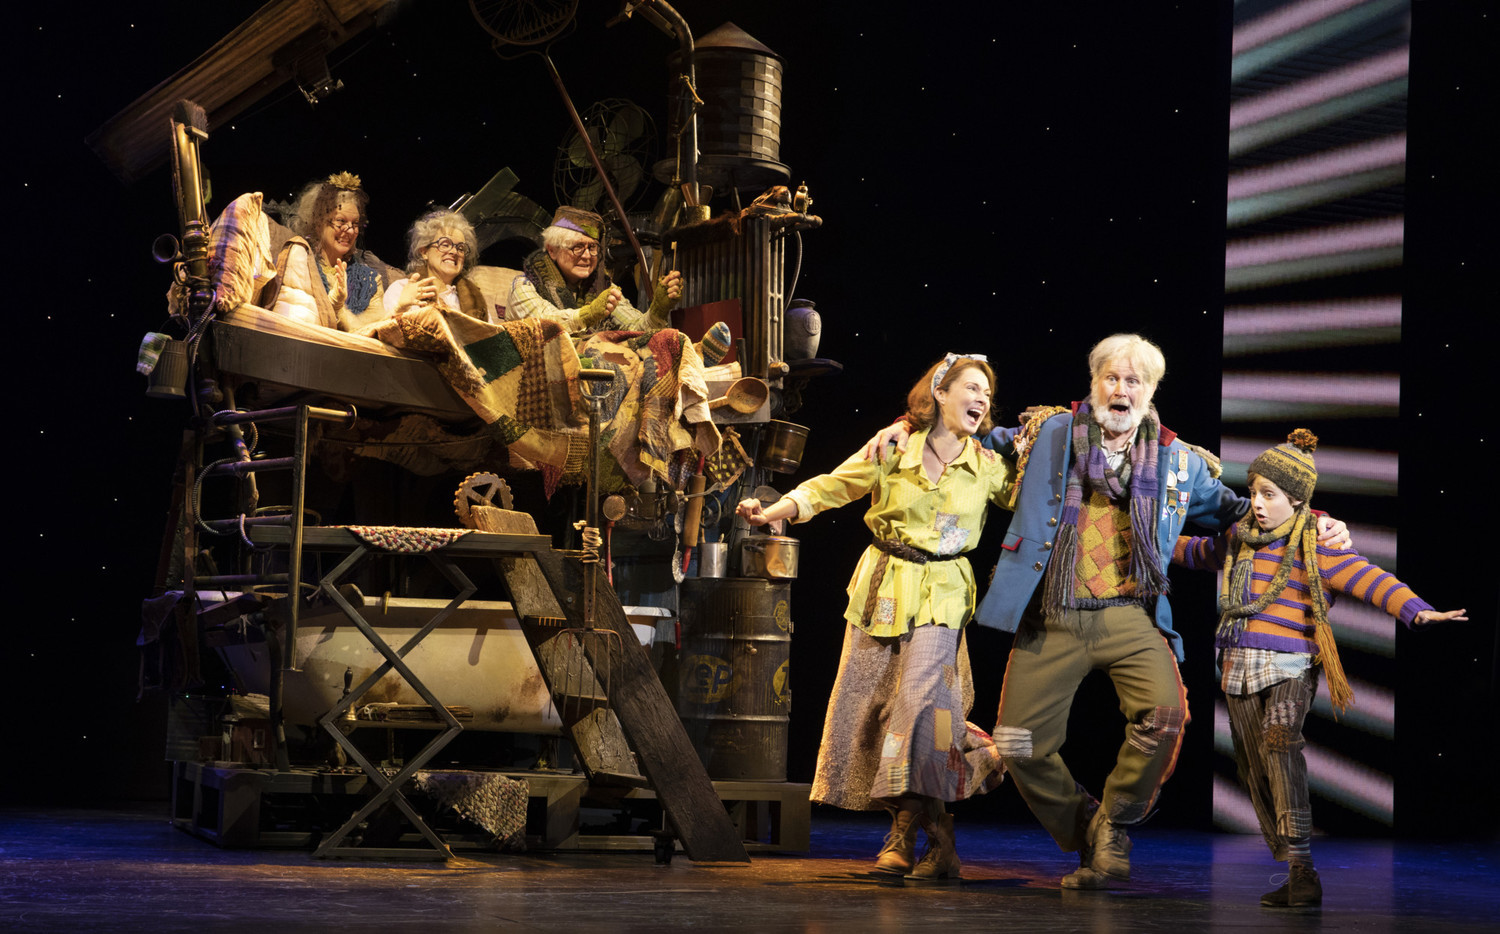 BWW Interview: CHARLIE AND THE CHOCOLATE FACTORY'S James Young Talks about Grandpa Joe and the Importance of Theater for Young People